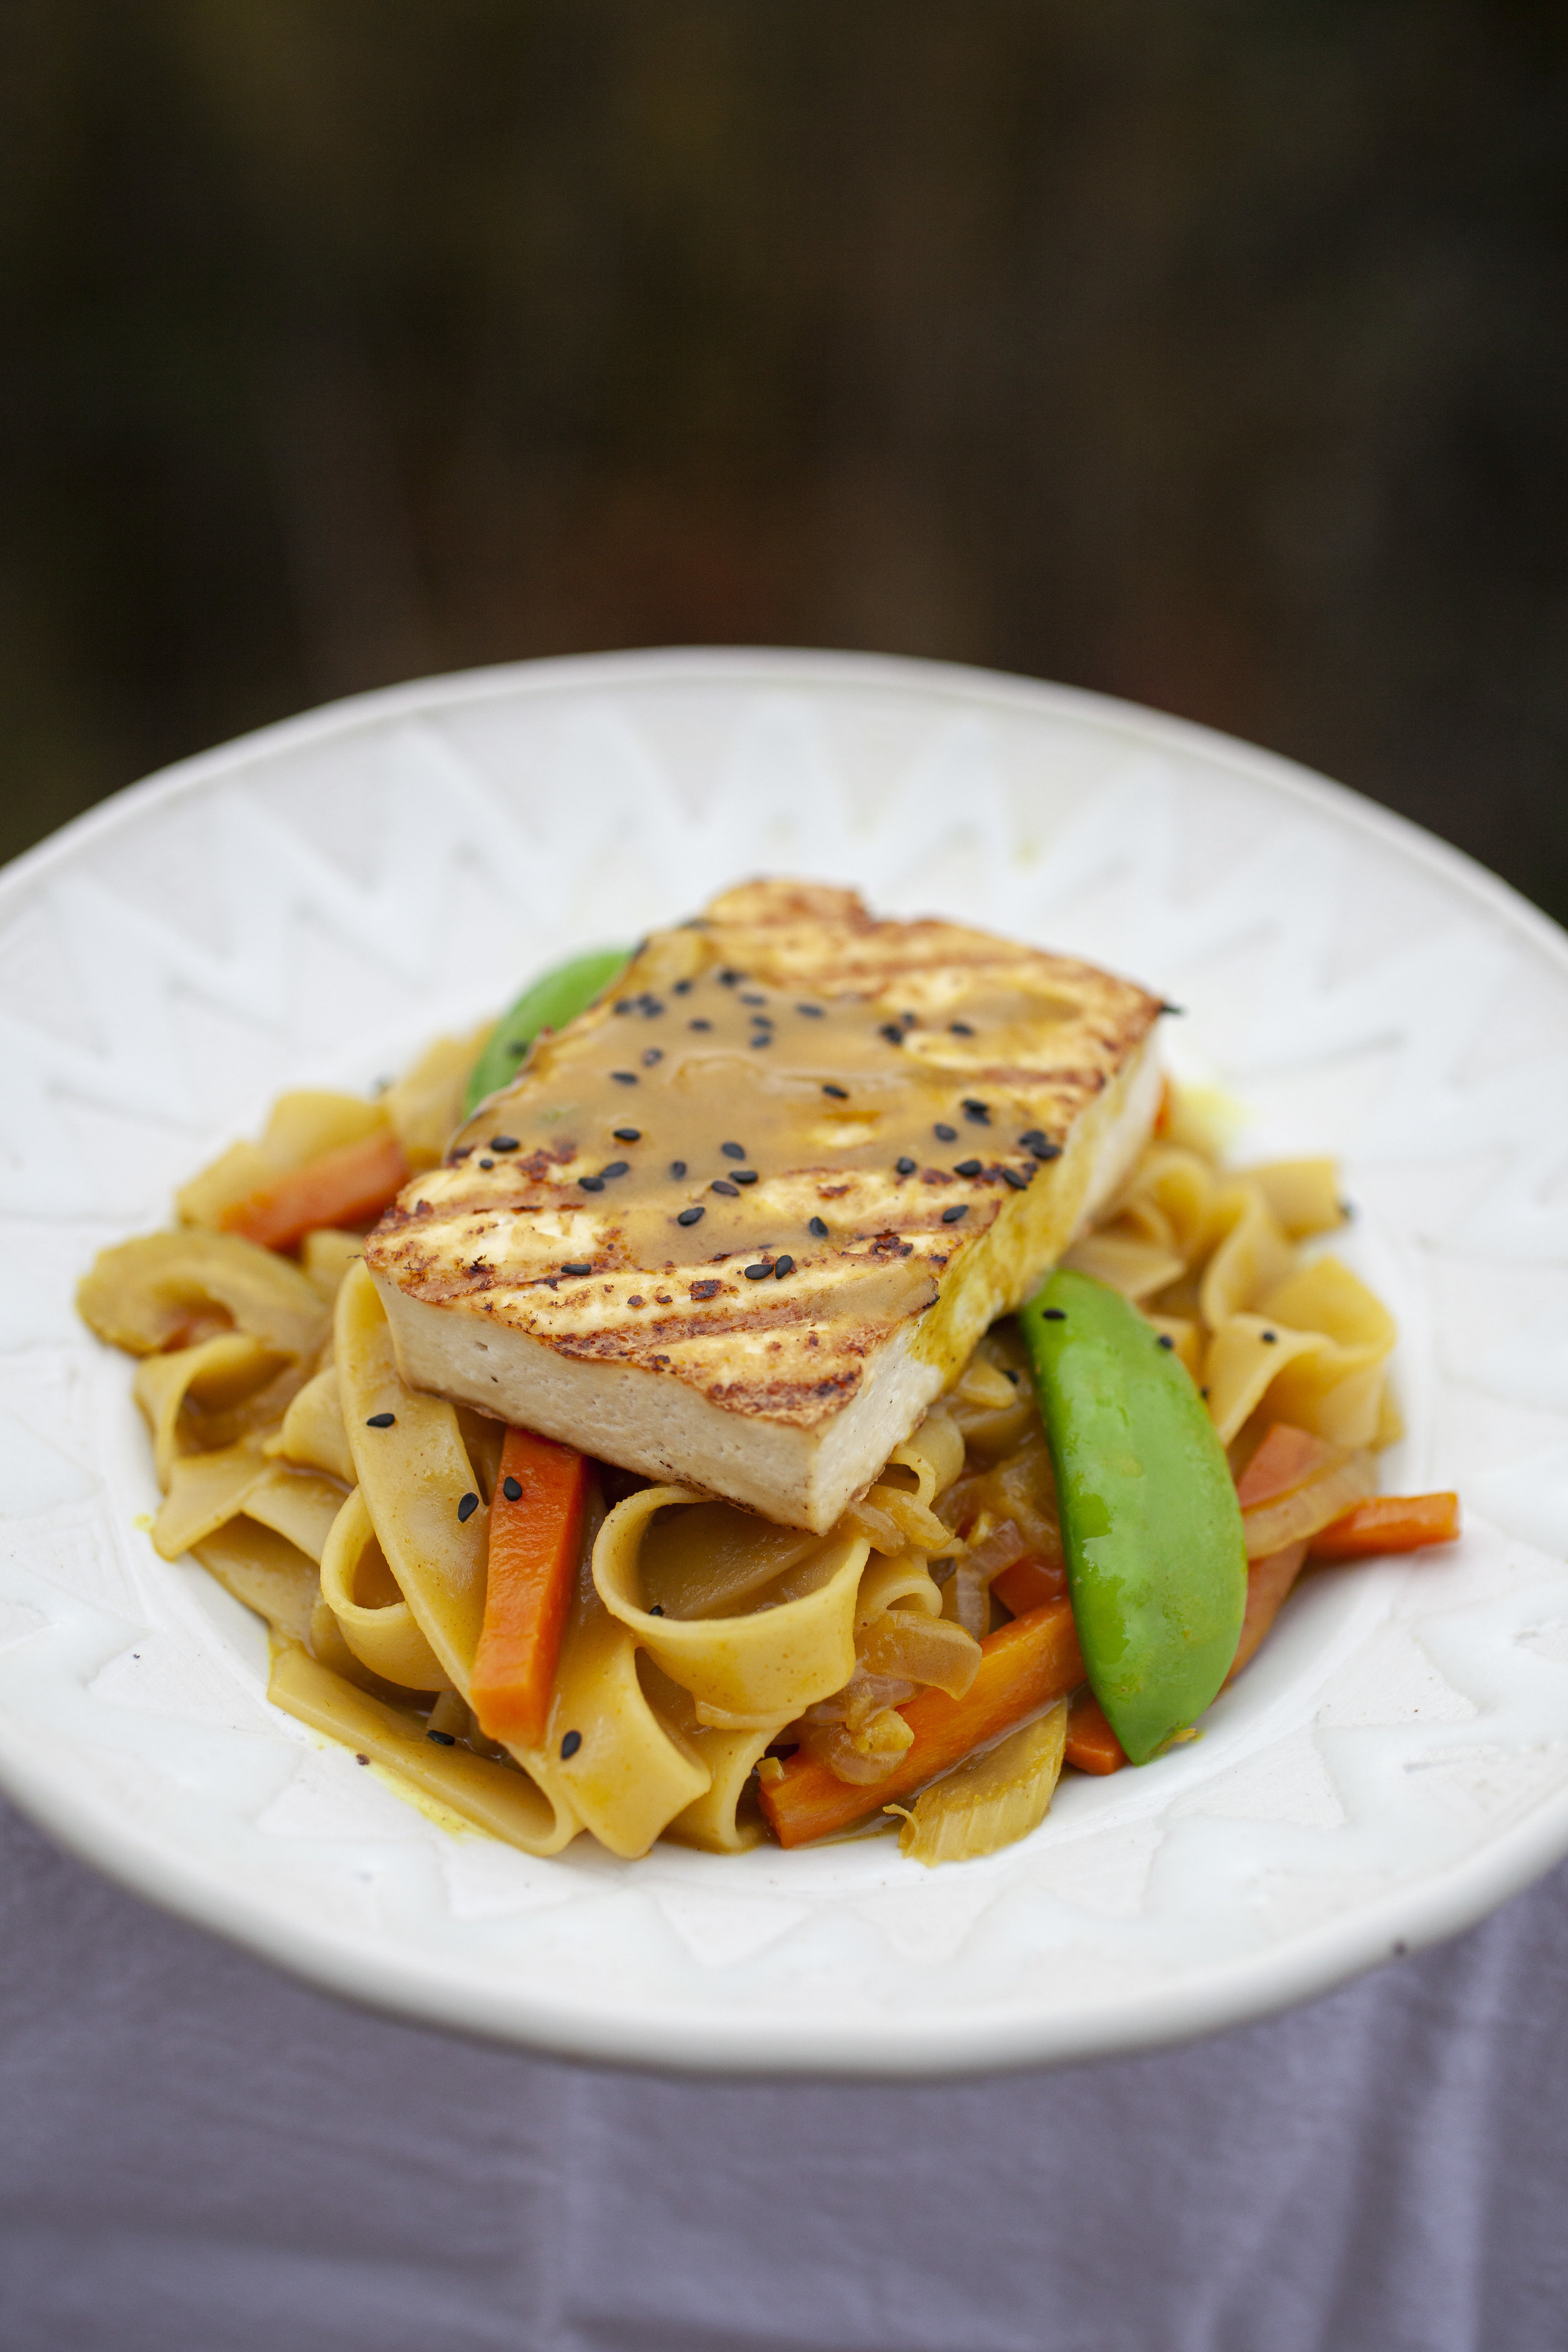 Produce On Parade - Thai Curry Turmeric Rice Noodles w/ Grilled Tofu - Rice noodles and sauteed veggies simmer in a deliciously creamy, coconut Thai curry turmeric sauce topped with grilled tofu. A hint of sweetness and spice, this is a super fast and easy dish that's perfect for a weeknight.